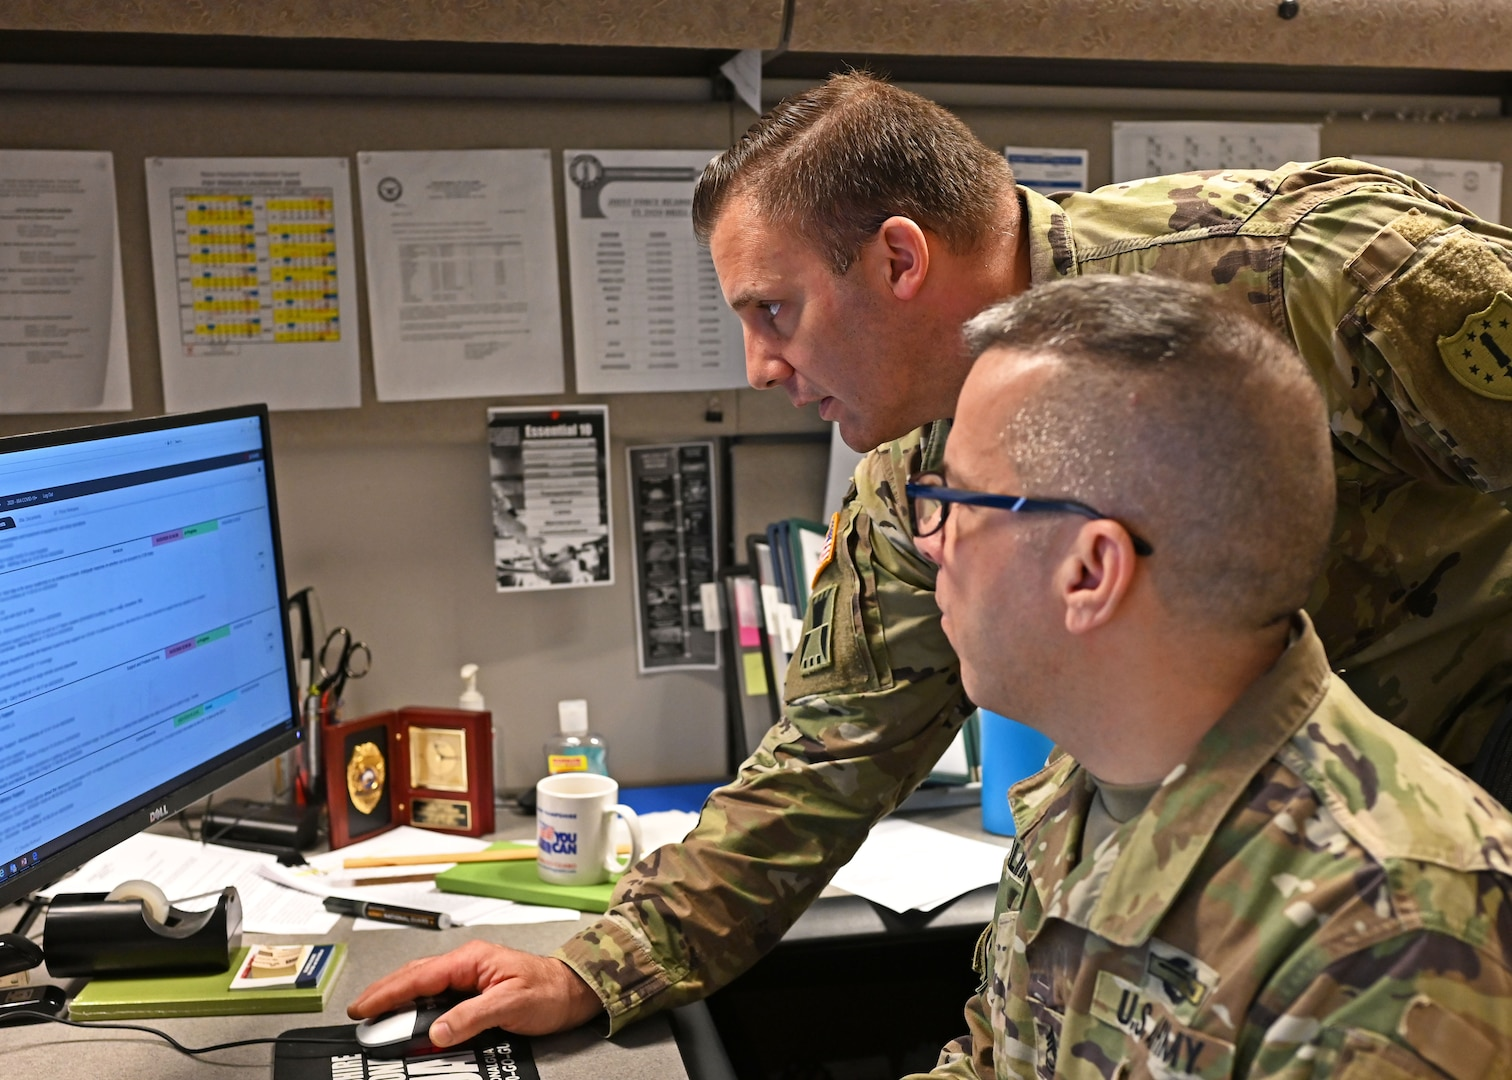 Master Sgt. Robert Valarese and Sgt. 1st Class Dennis Galimberti, NHARNG, monitor current and potential COVID-19 missions from the Joint Operations Center in Concord, N.H.